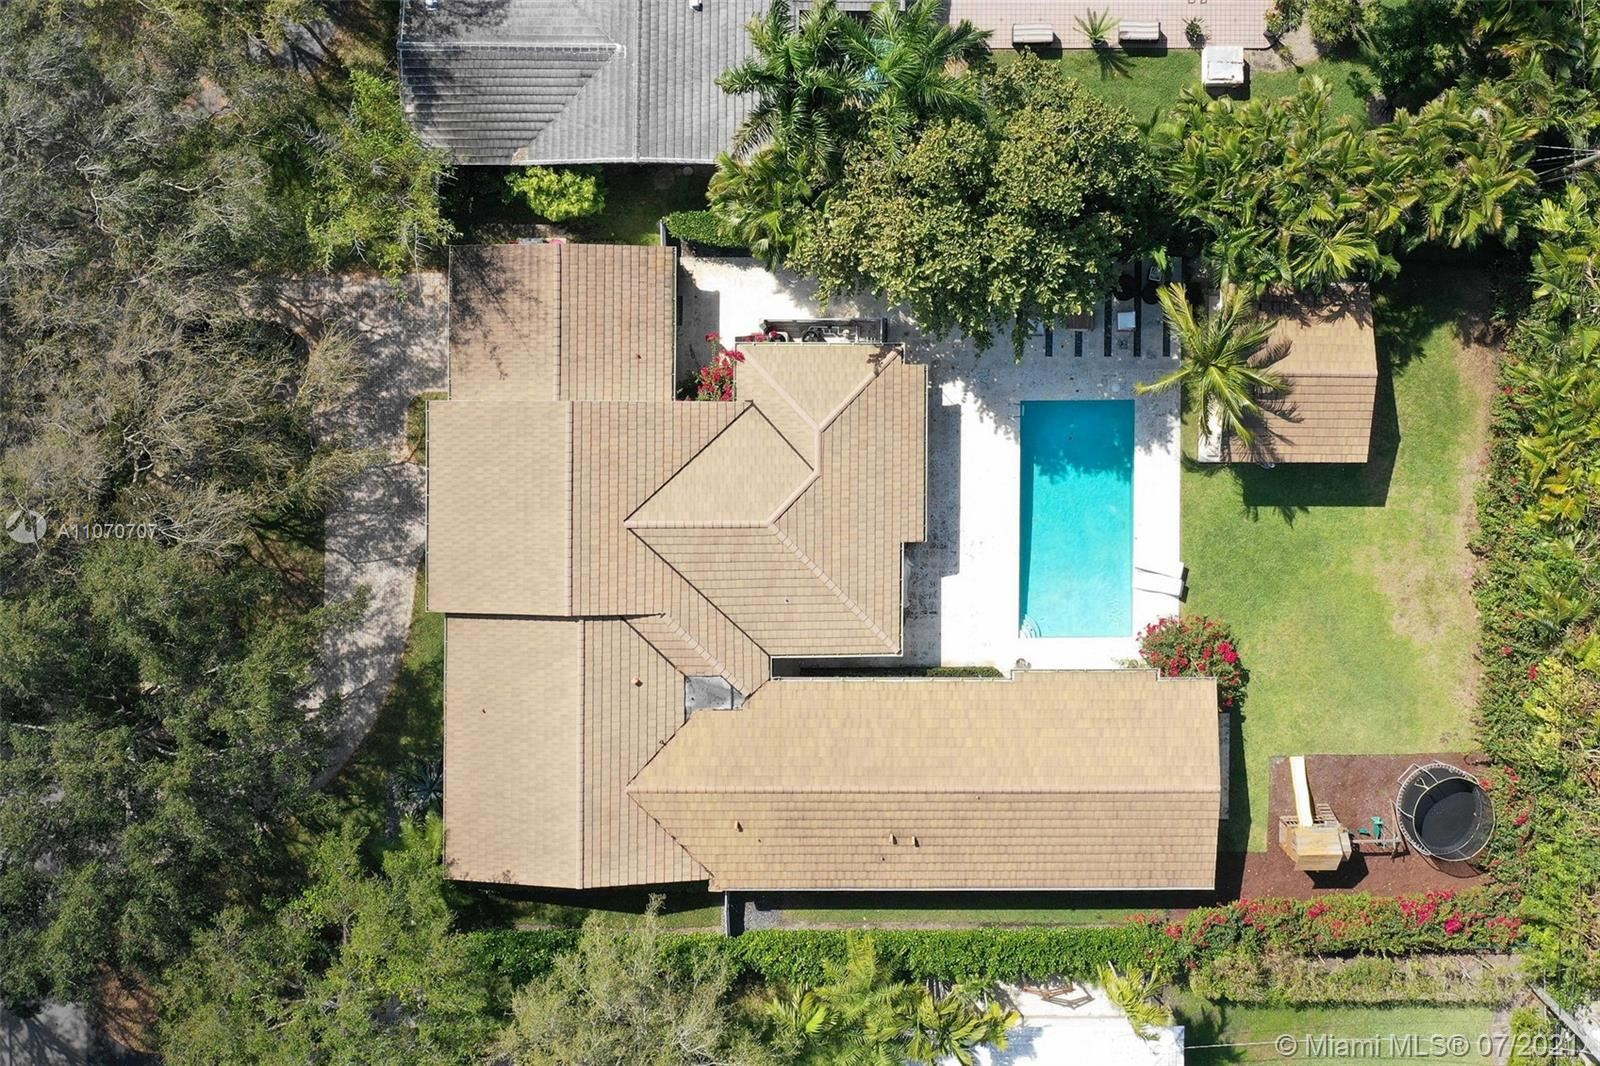 Photo of 719 Paradiso Ave, Coral Gables, FL 33146 (MLS # A11070707)